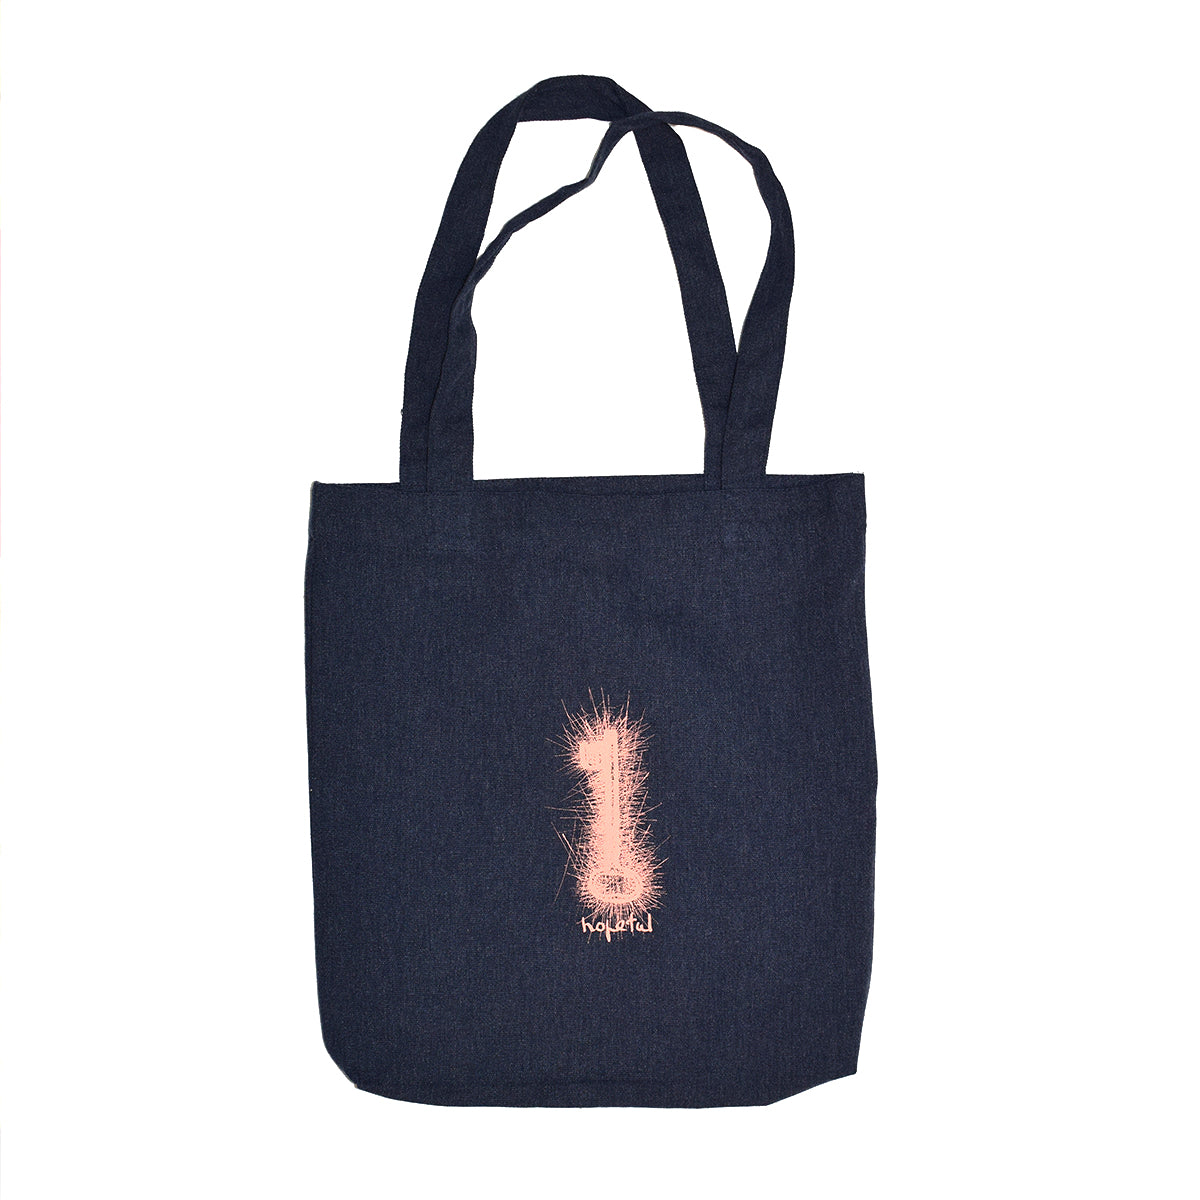 Miguels Key Recycled Shopper // Denim